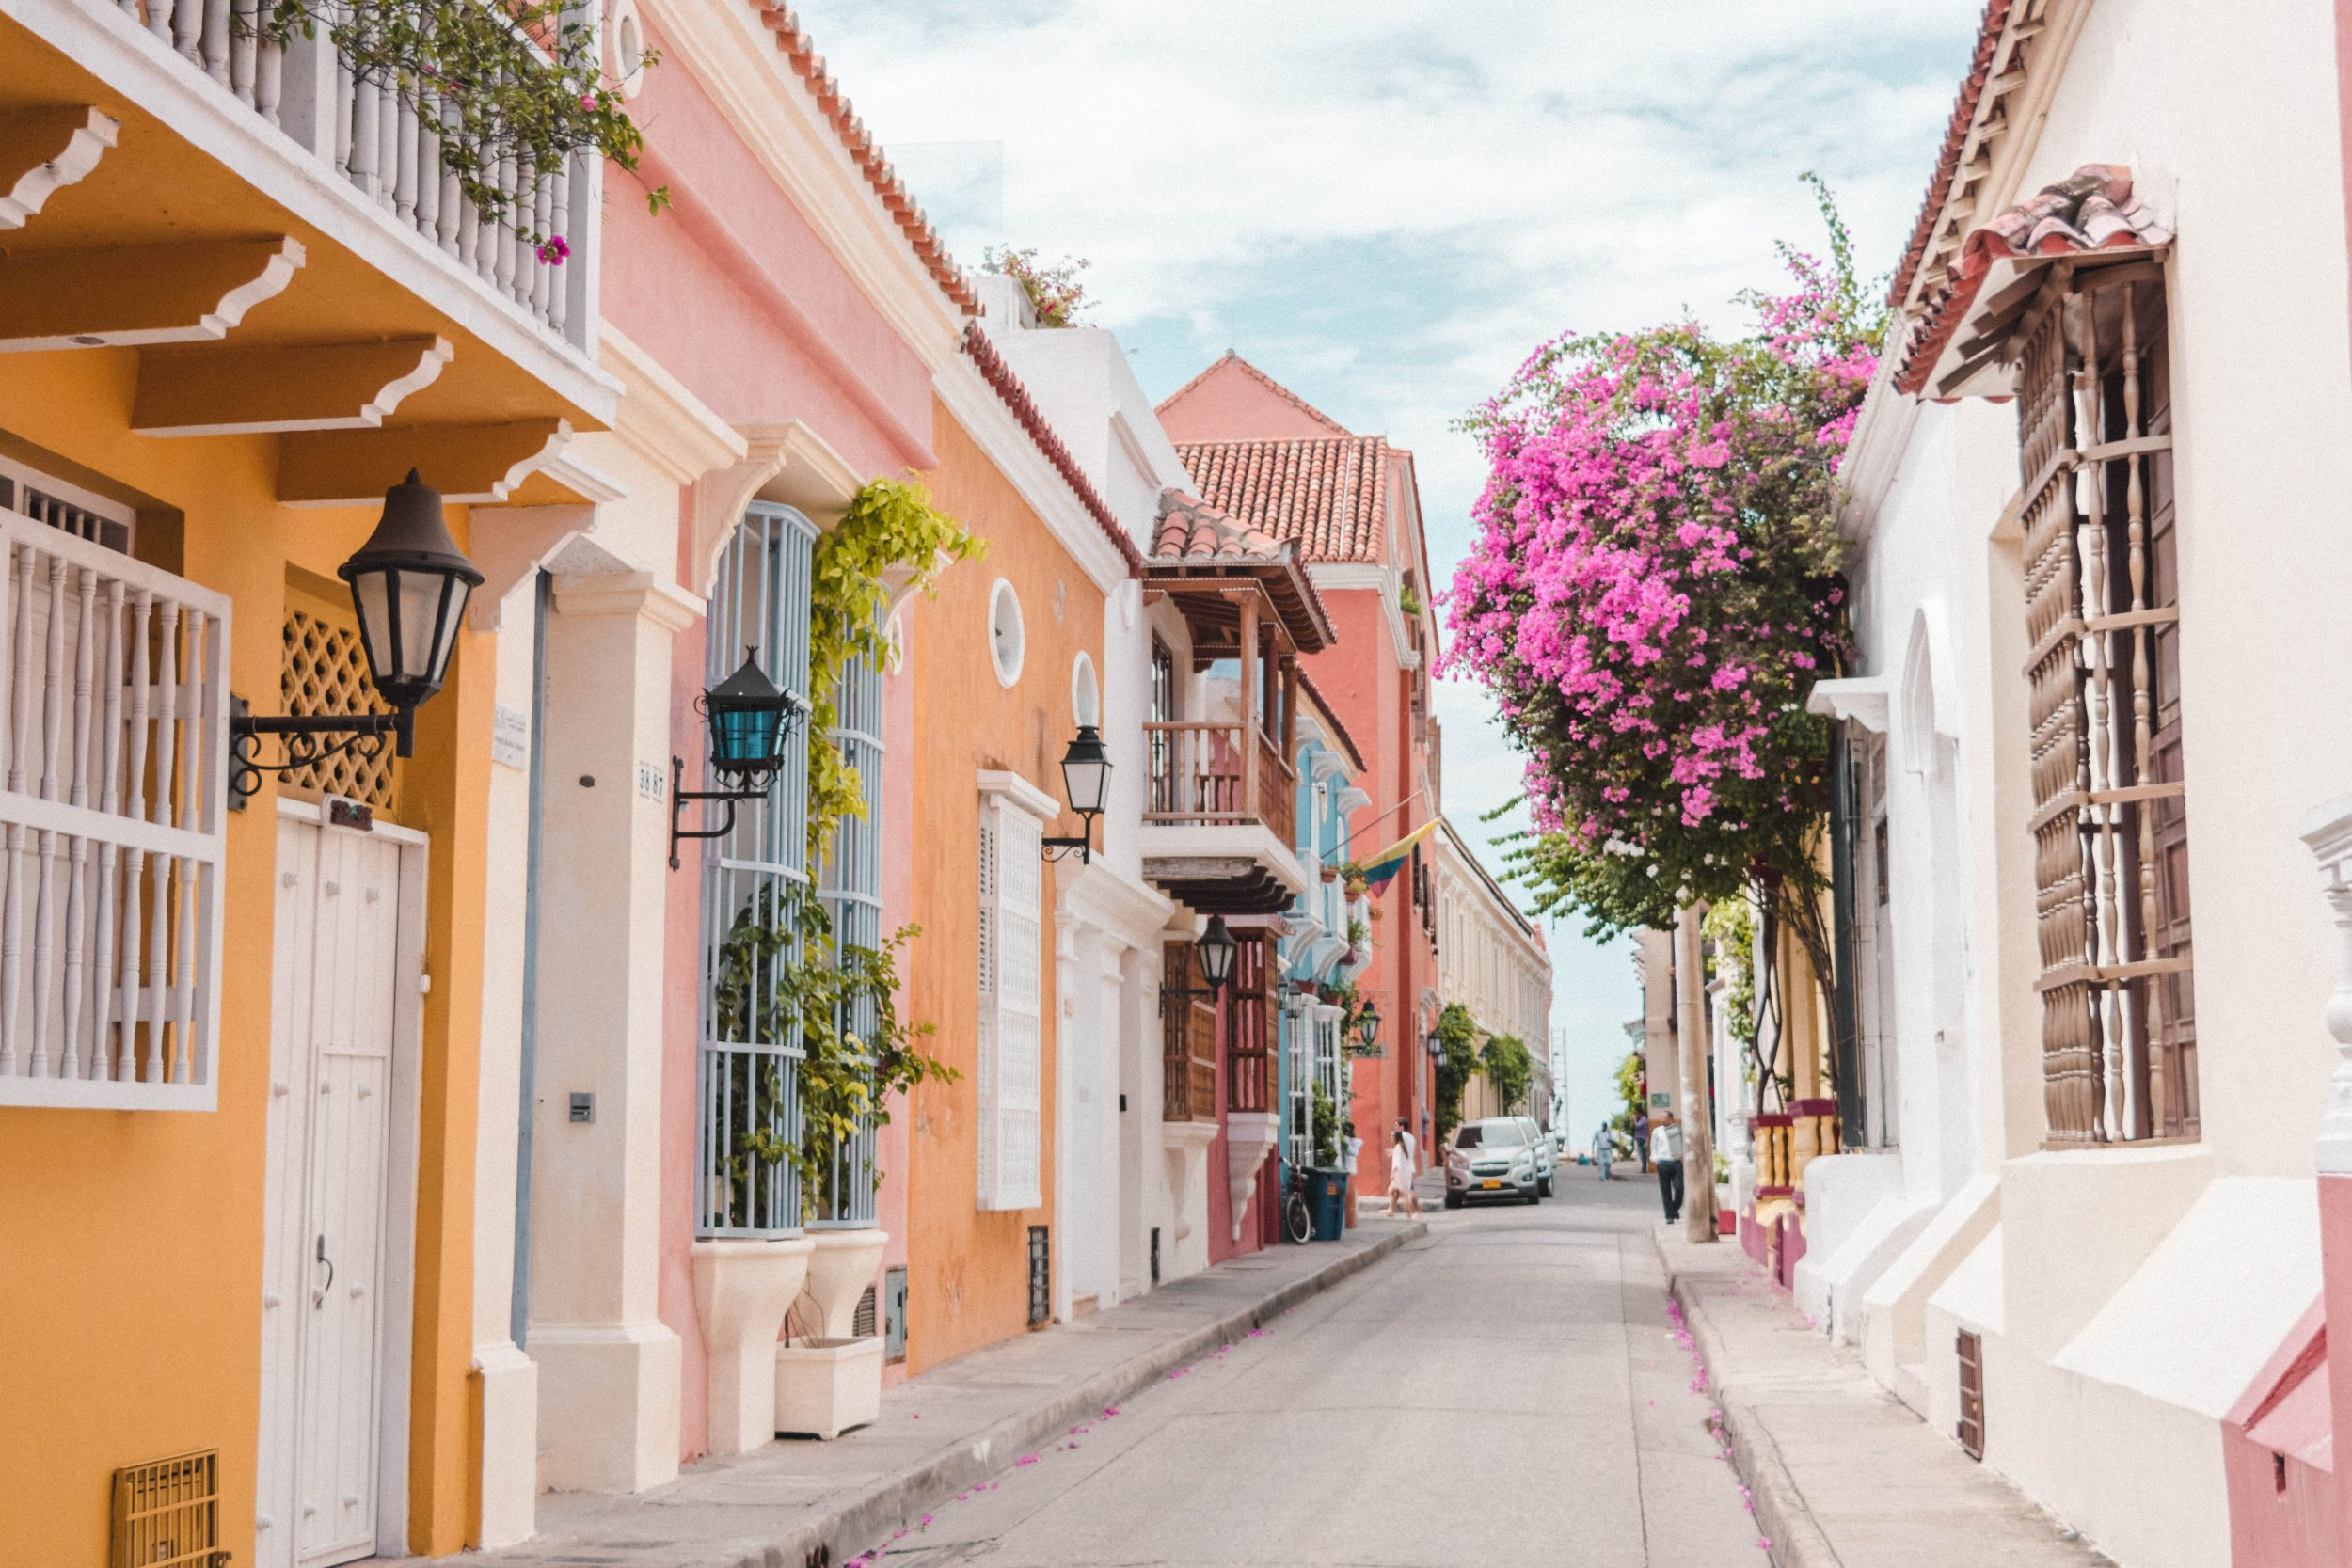 515893d8f0c Cartagena first made its way onto my bucket list with pictures of brightly  coloured colonial houses and bougainvillea covered streets.